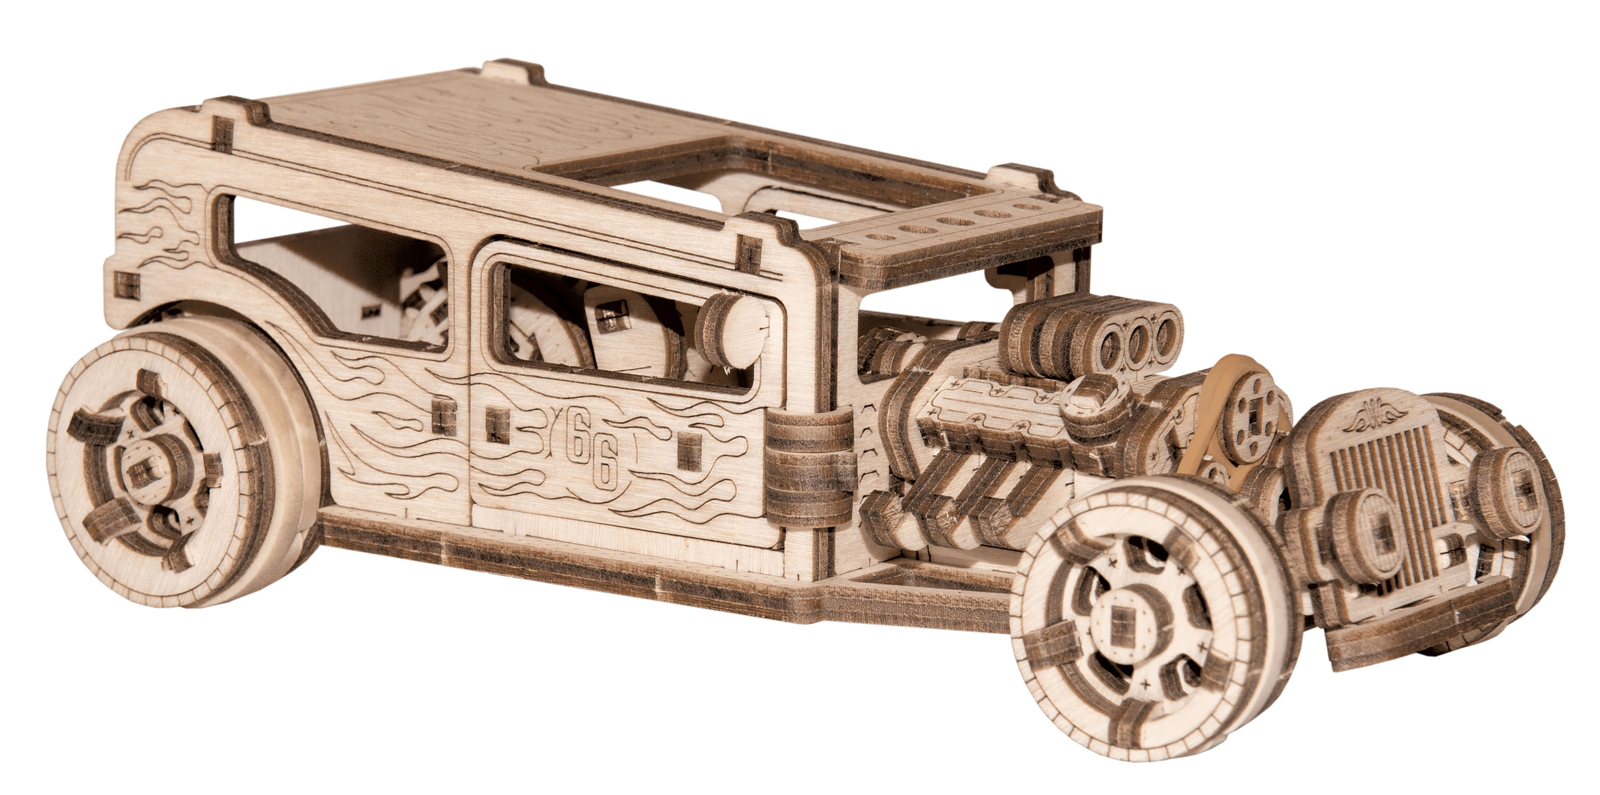 Hot Rod Wooden Jigsaw Puzzle